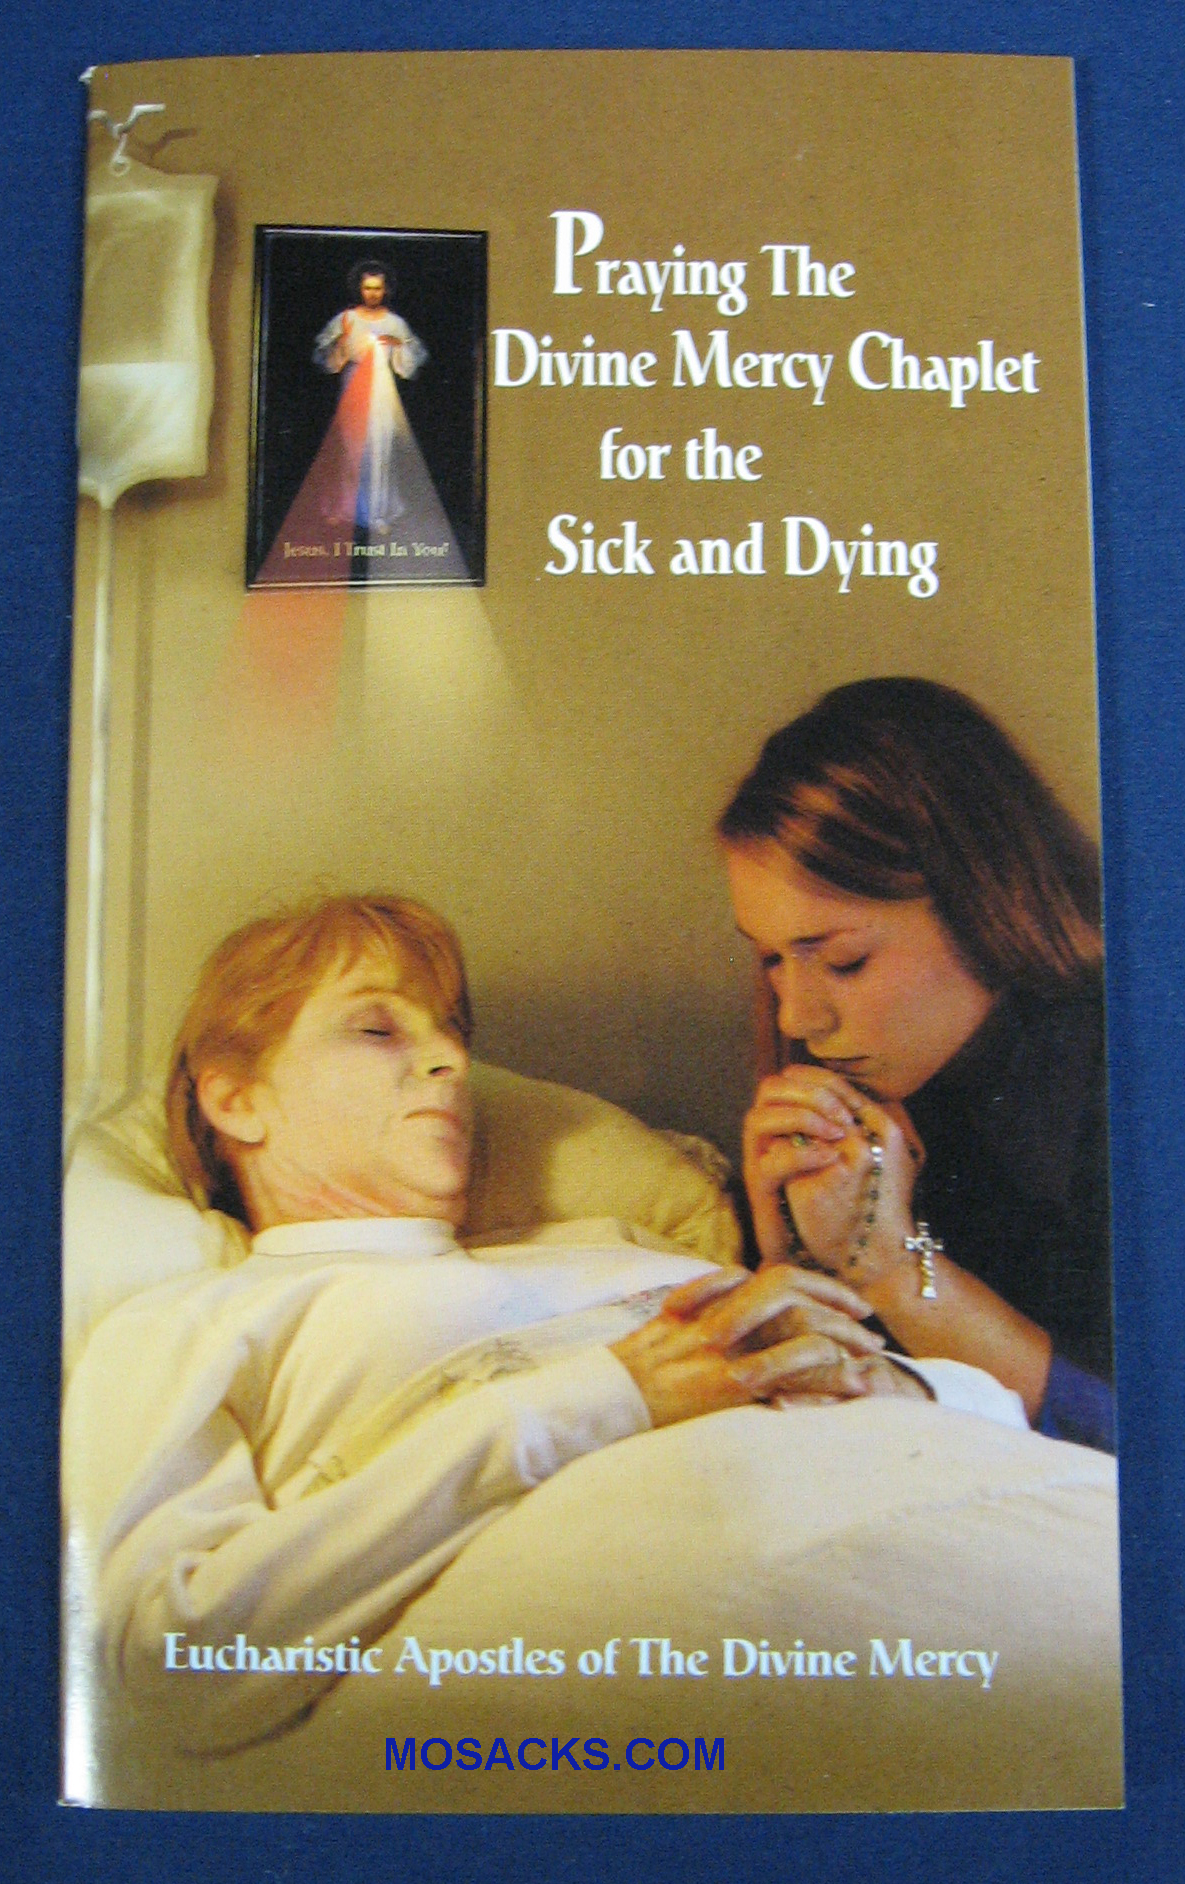 Praying The Divine Mercy Chaplet For The Sick And Dying-252-DMP